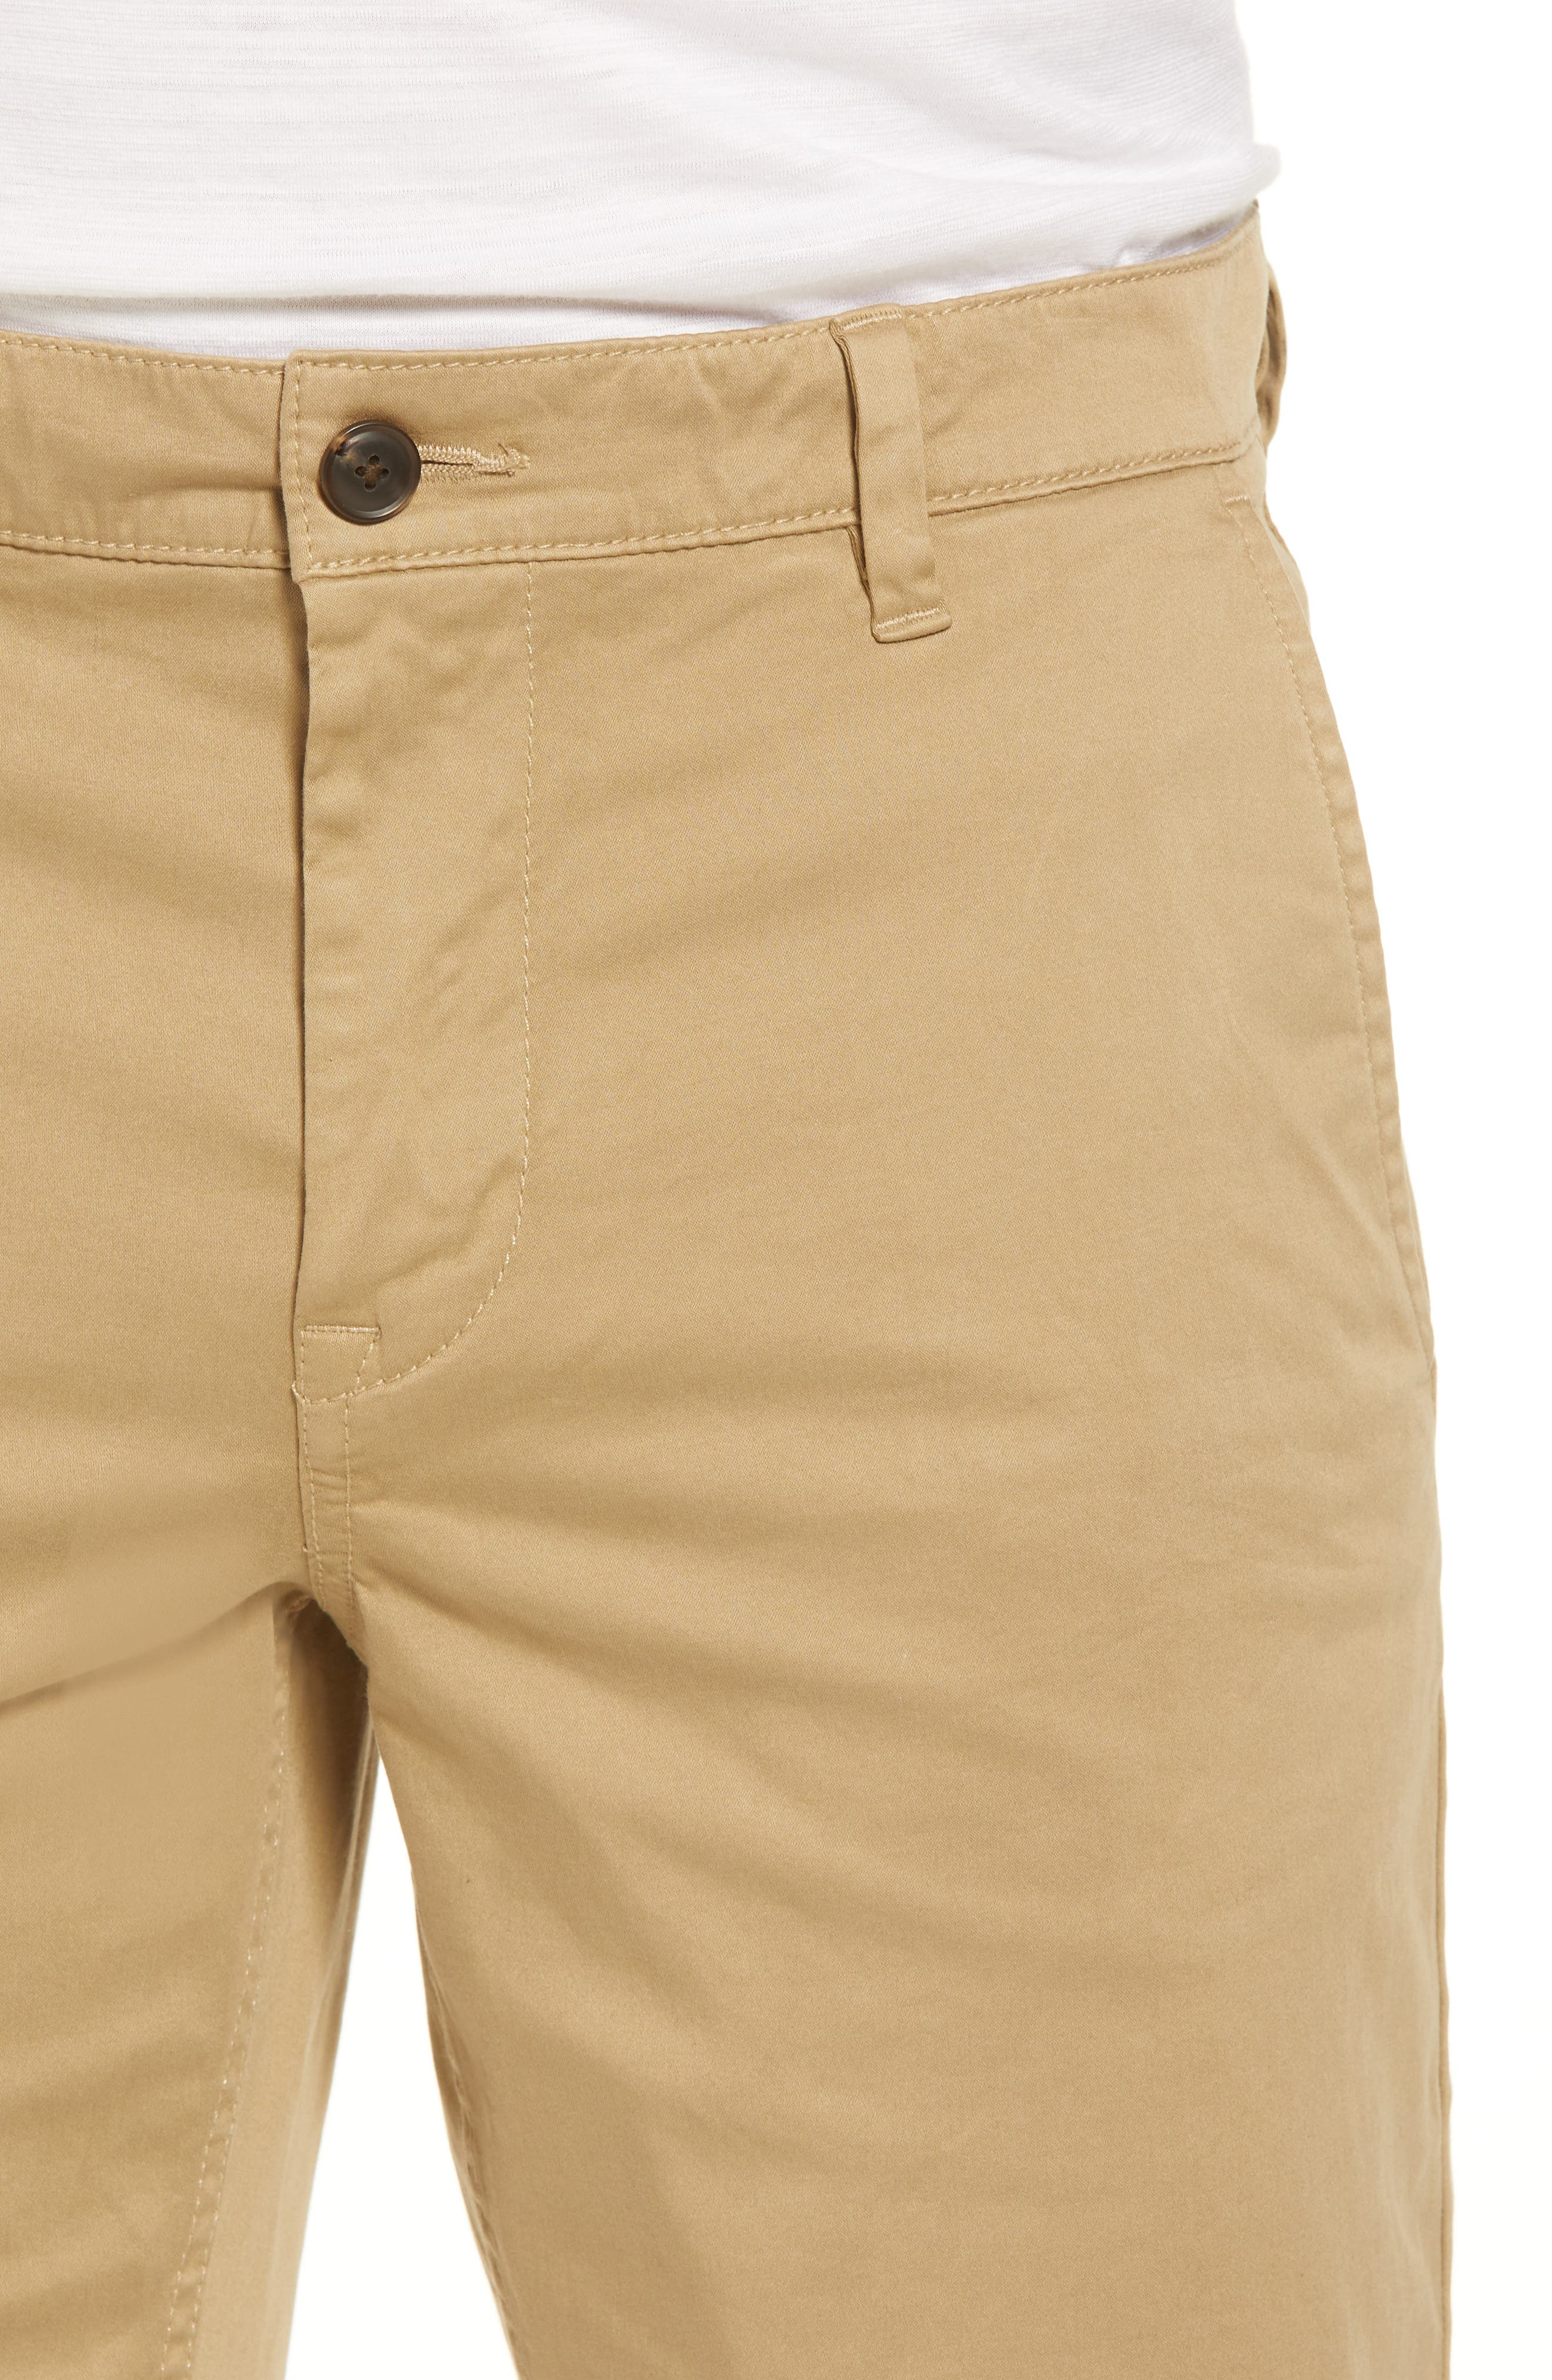 Slim Fit Shorts,                             Alternate thumbnail 4, color,                             Brown